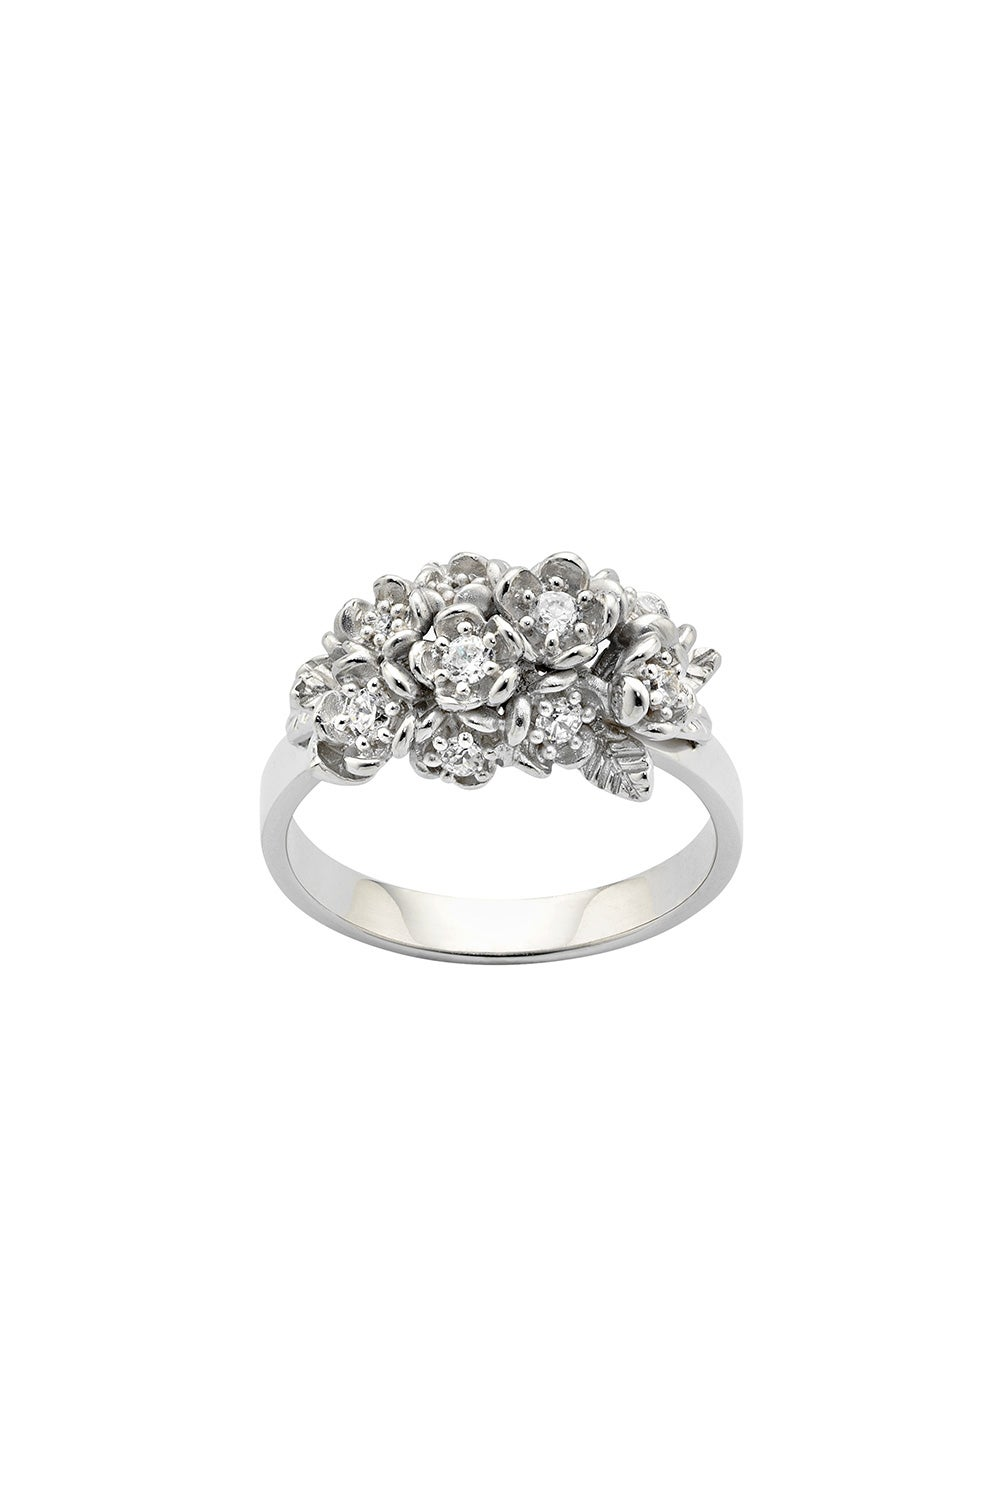 Diamond Flowers Ring, White Gold, 0.42ct Diamond